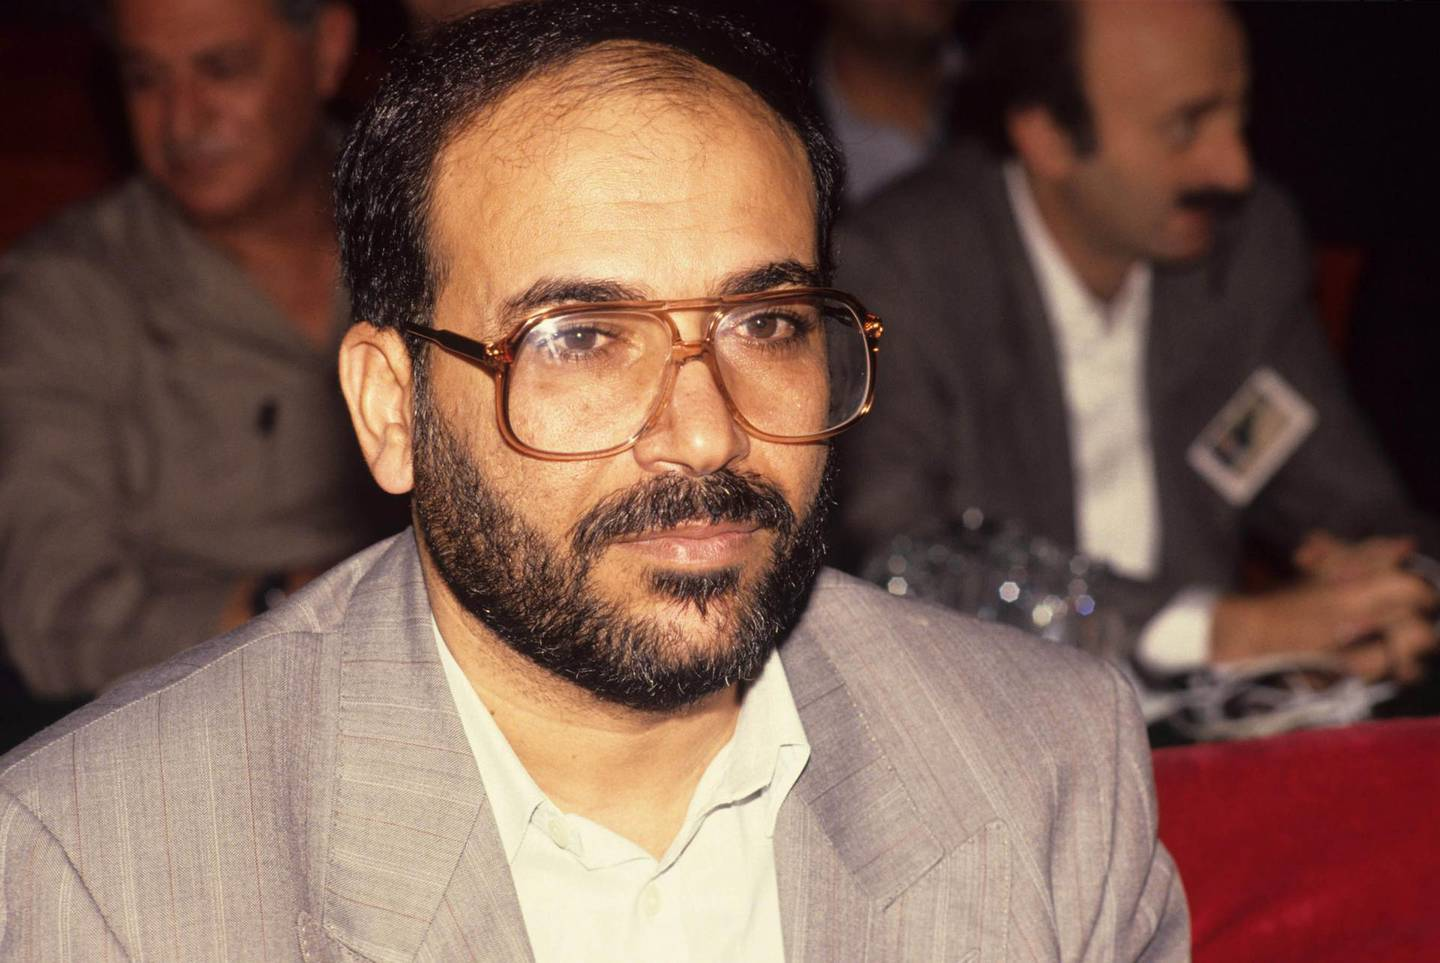 Fathi Shaqaqi (1951 - 1995), the Palestinian who founded and led the Palestinian Islamic Jihad organisation, attends a conference held in Tehran in support of the Palestinian people, February 1992. An advocate of suicide bombings as a means of protest, he was assassinated by Mossad in Malta. (Photo by Kaveh Kazemi/Getty Images)